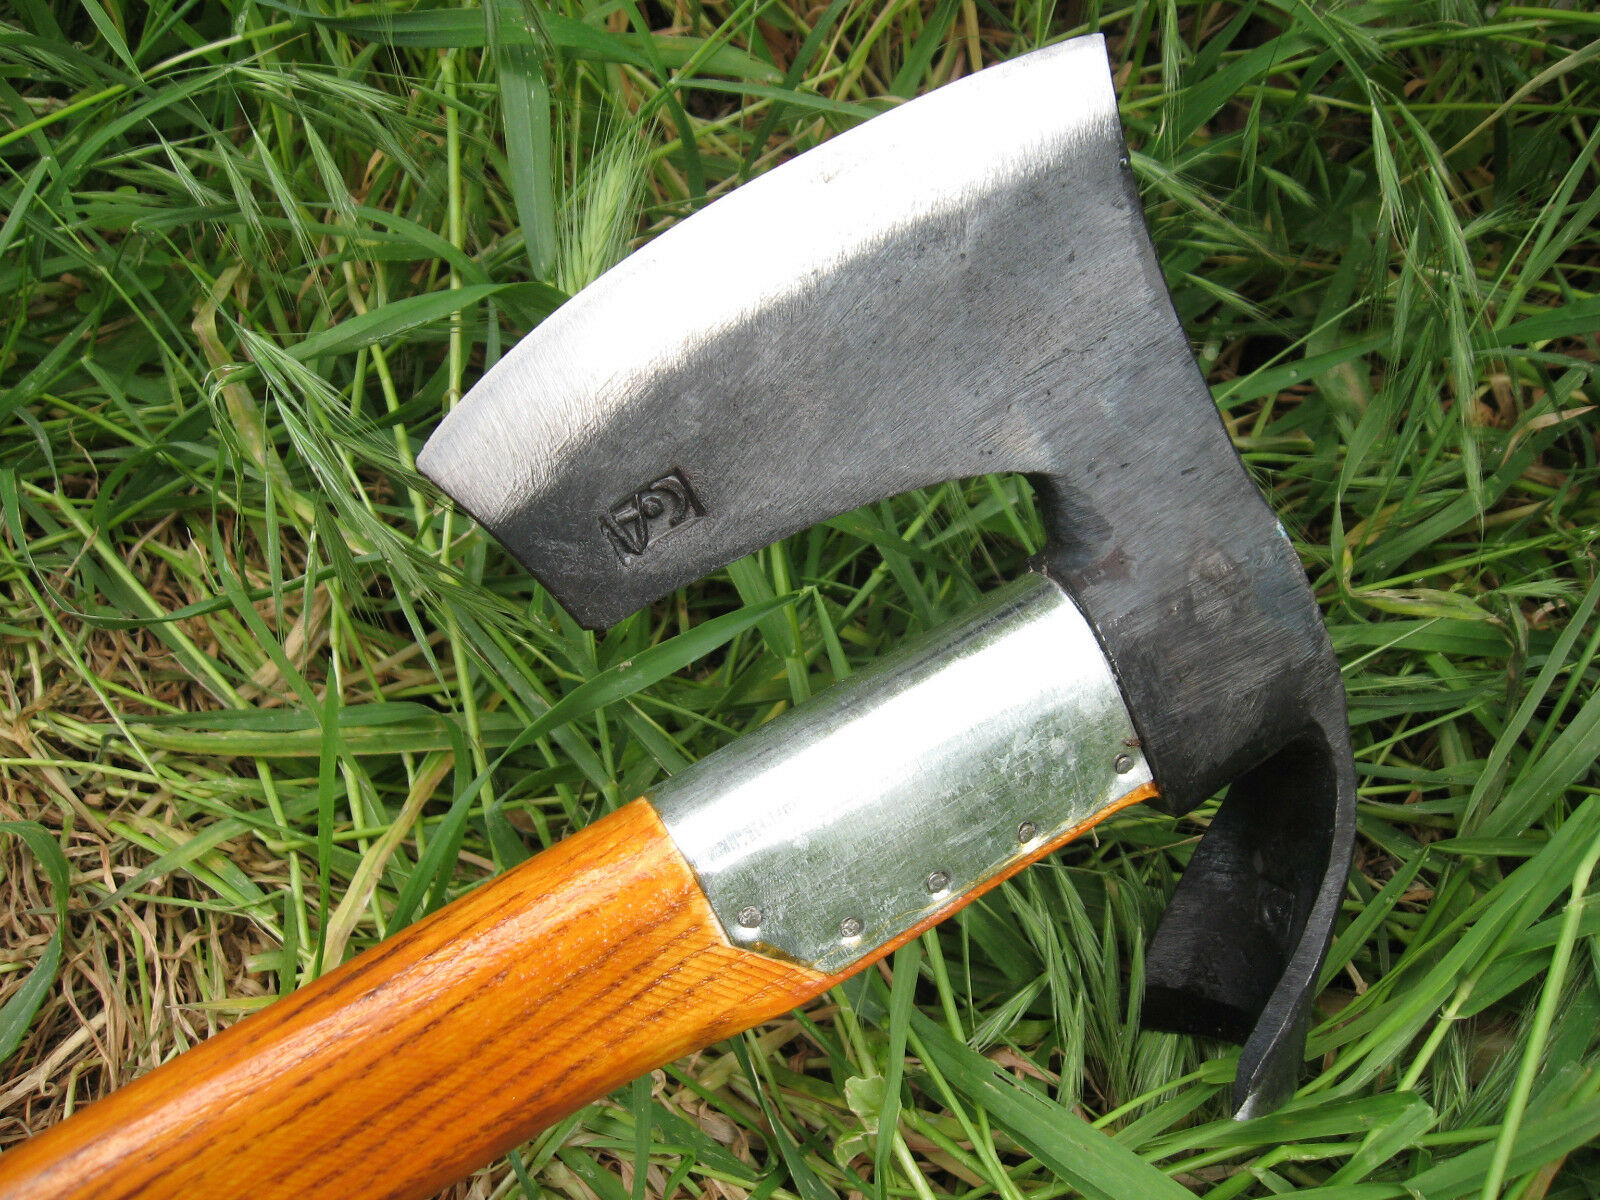 Forged Handmade Combined Tool  Bearded Axe & Curved Bowl Spoon Maker Adze Hatchet  select from the newest brands like